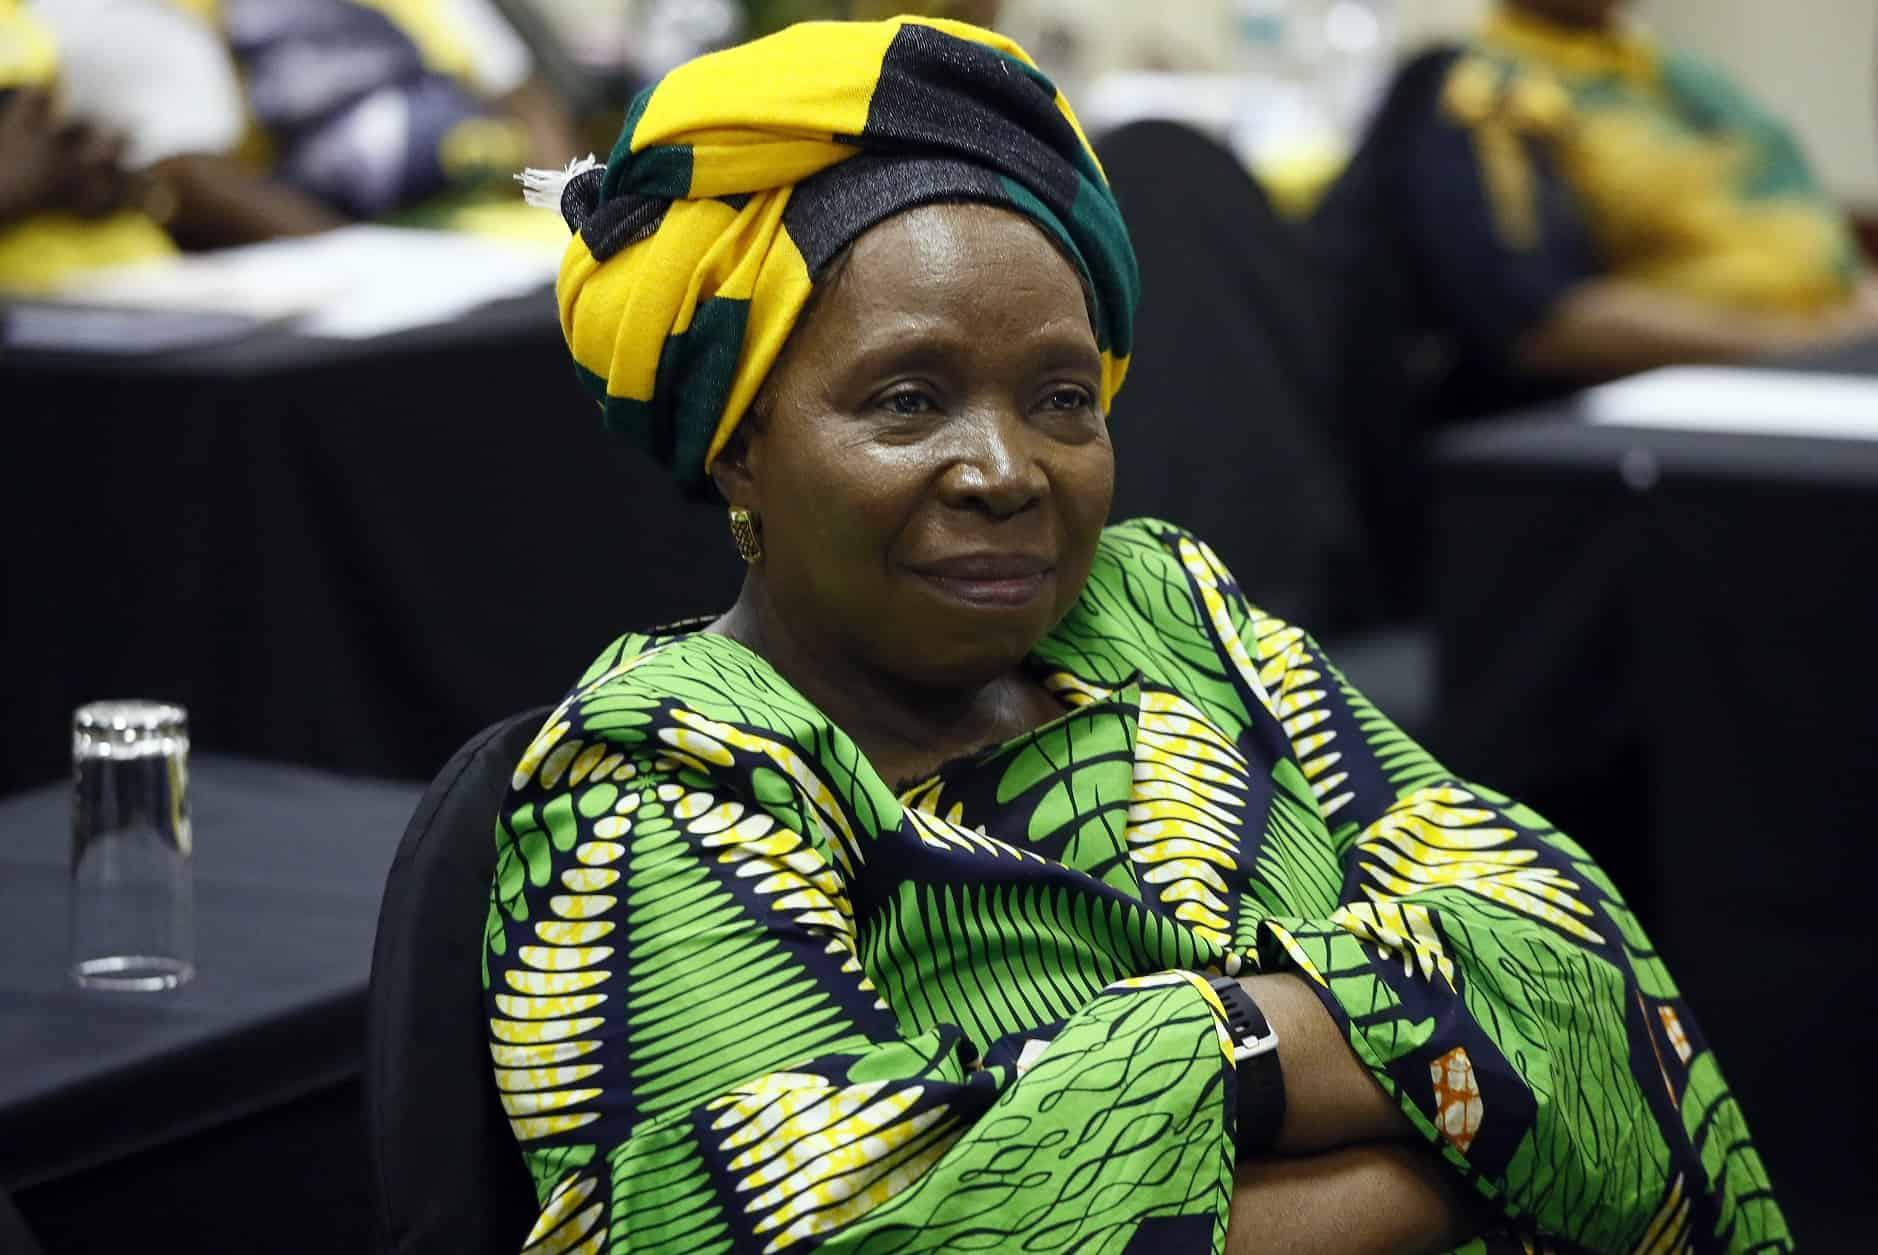 Minister Dlamini-Zuma lied to the nation and must be fired.